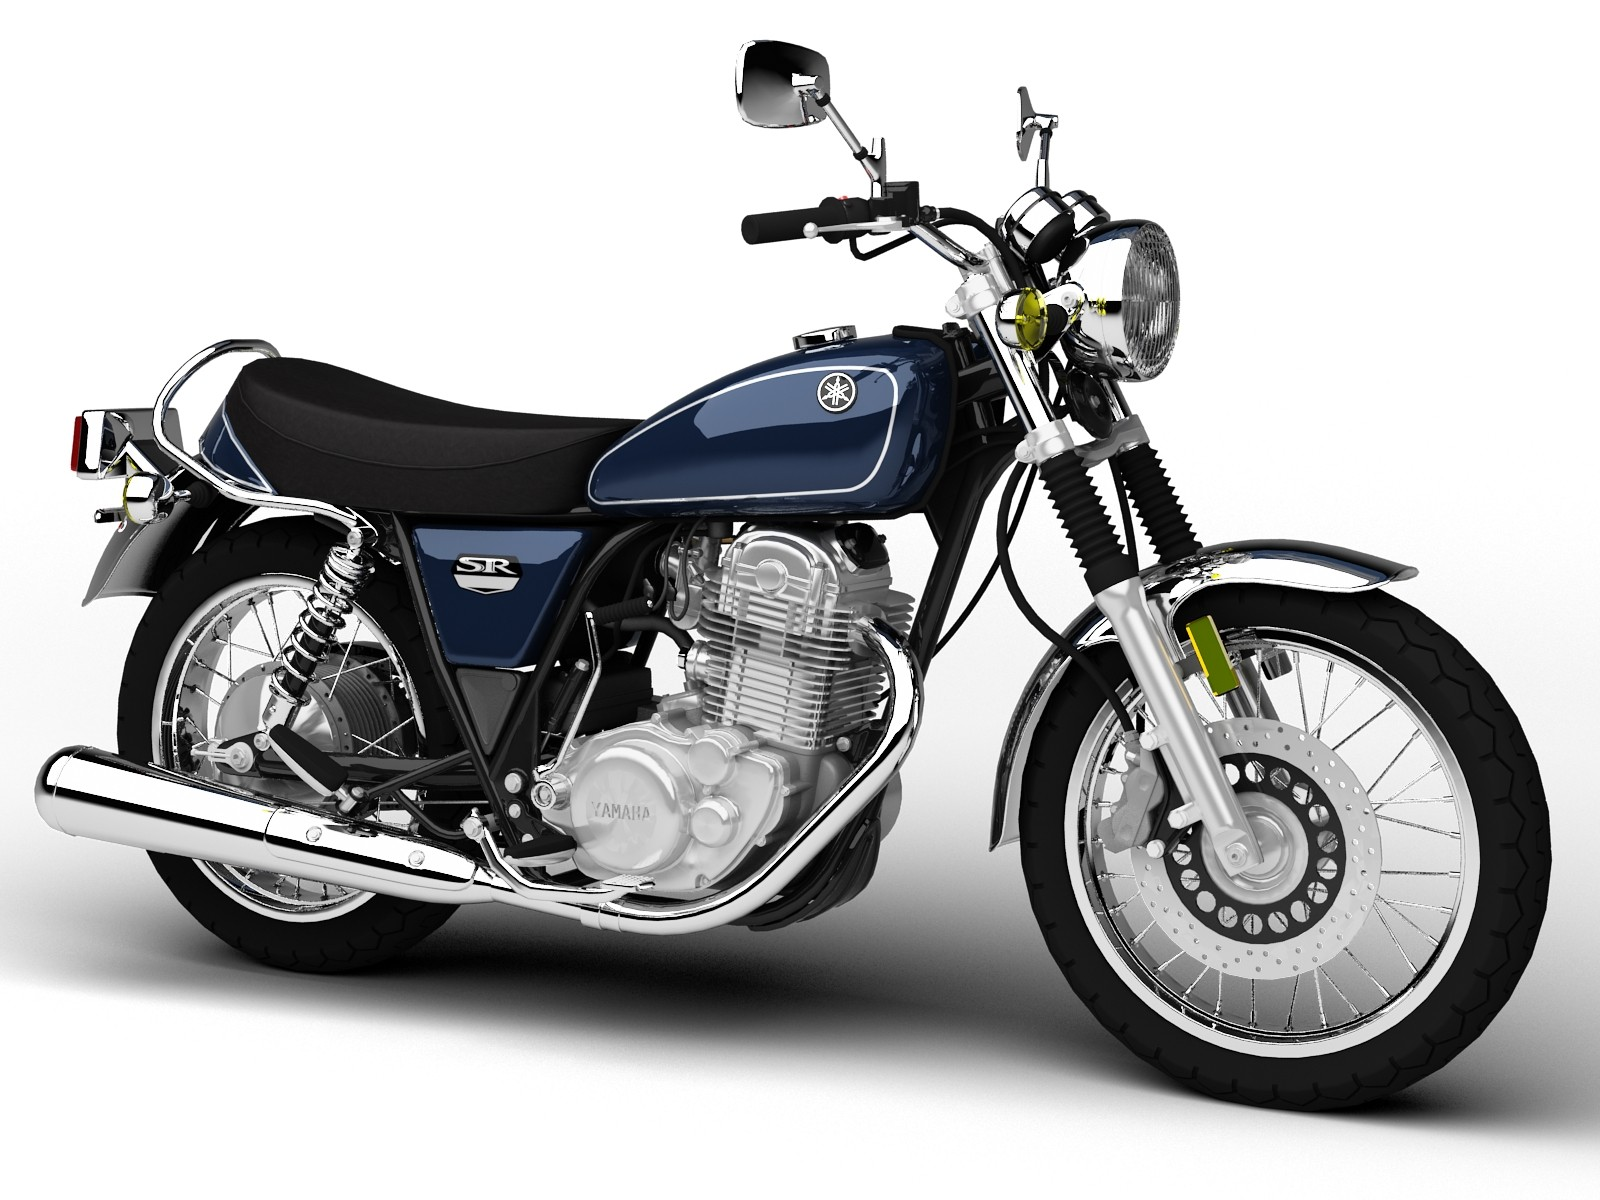 2016 Yamaha Sr400 First Look Hd Picture All Latest New Old Car